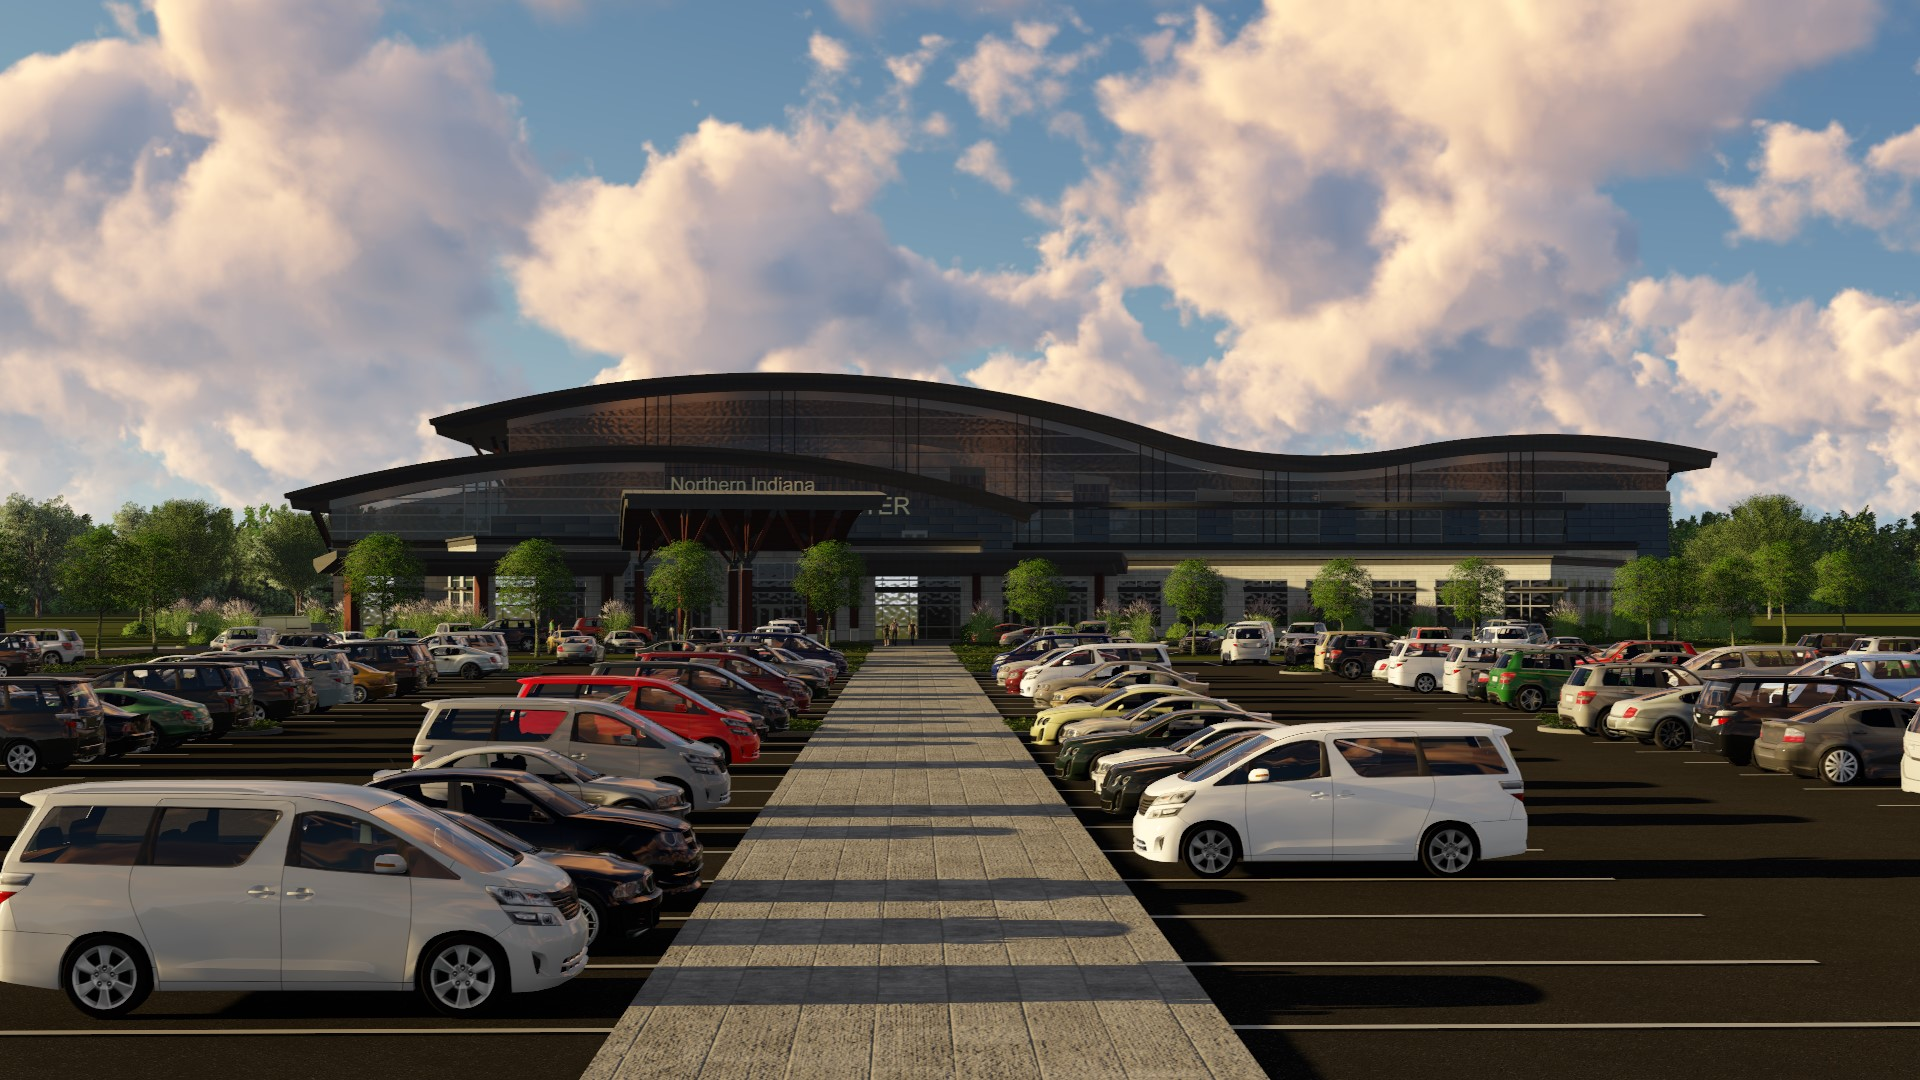 parking and accessibility  are intrinsic elements of the campus, designed to be as visually engaging as it is functional.